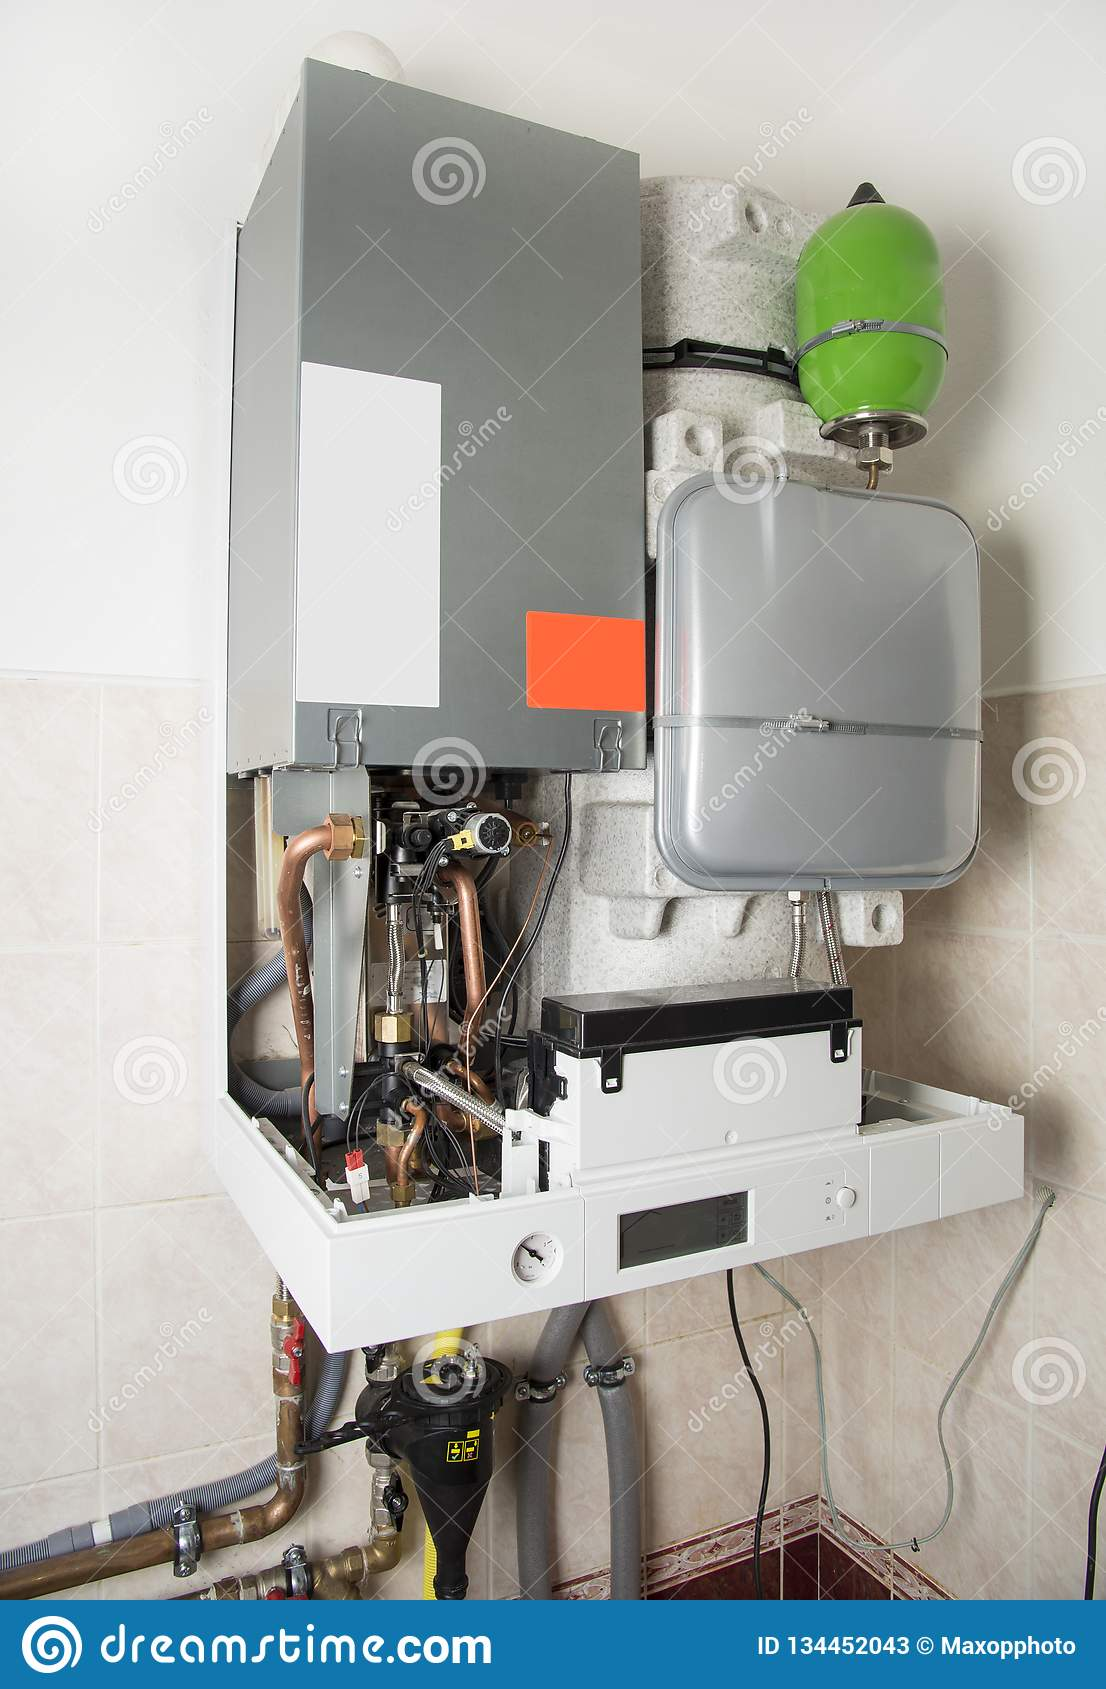 New gas condens boiler for heating and hot water